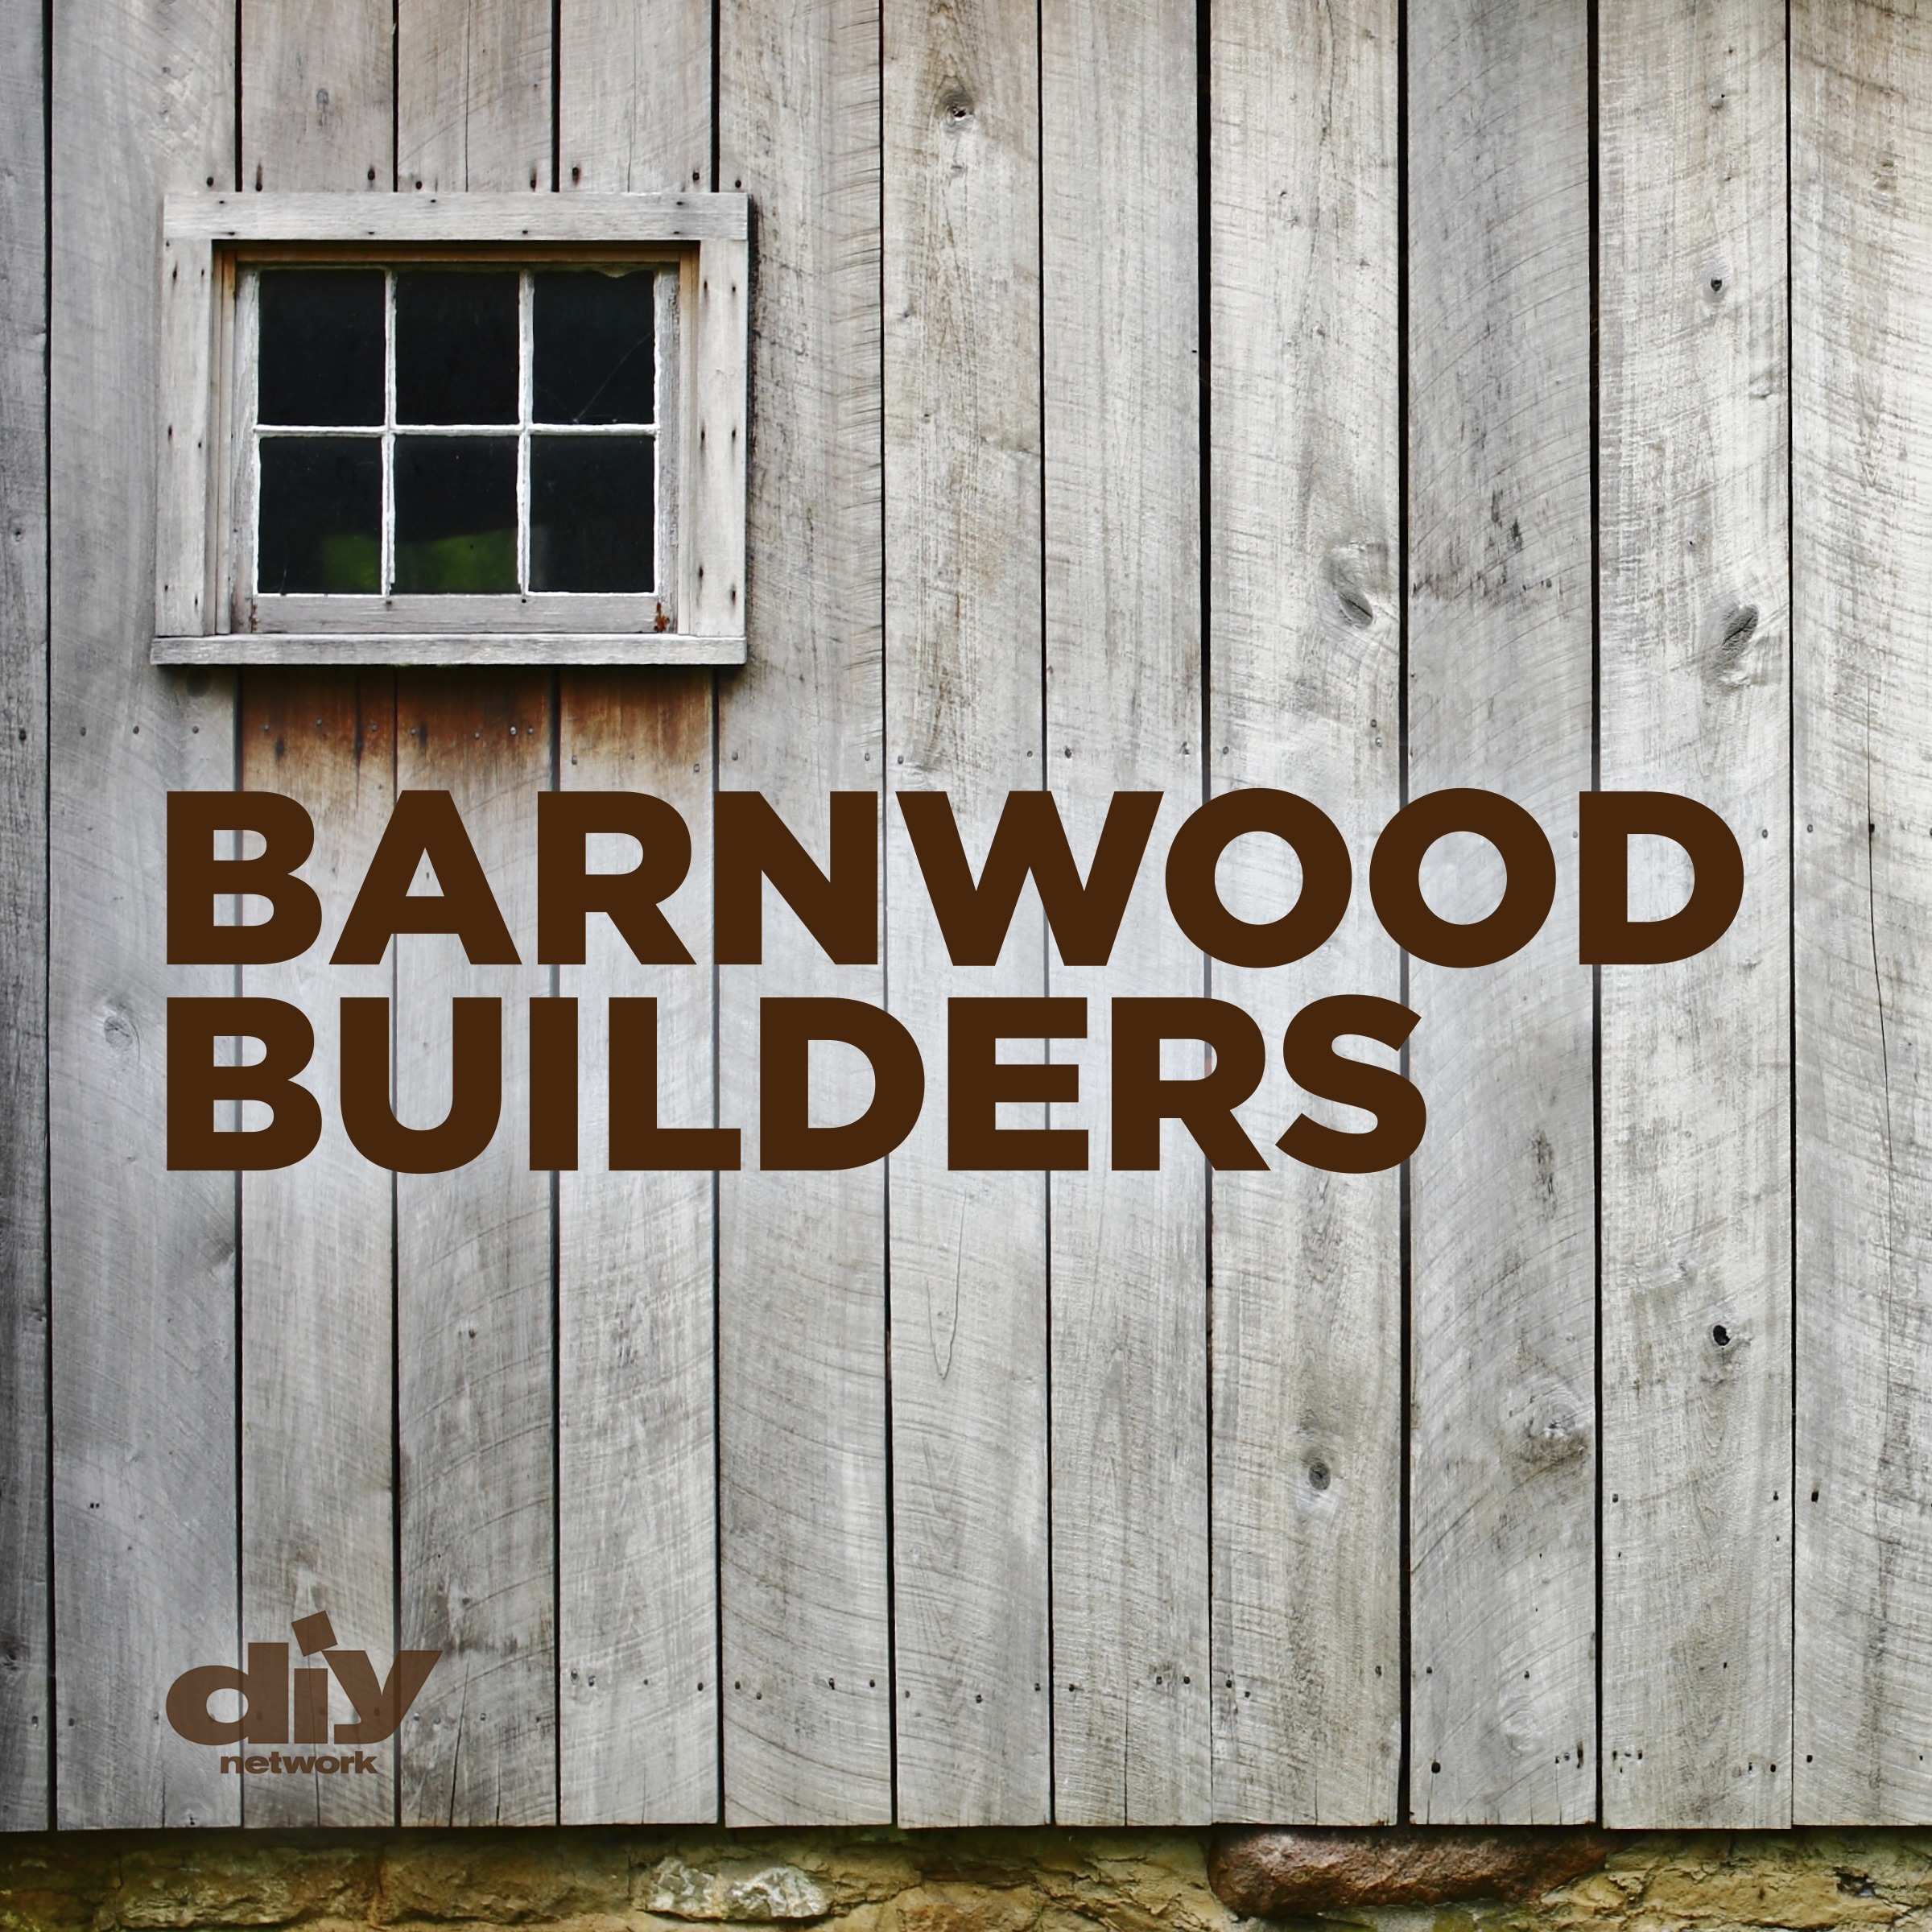 How Old Is Johnny Jett On Barnwood Builders | just b.CAUSE